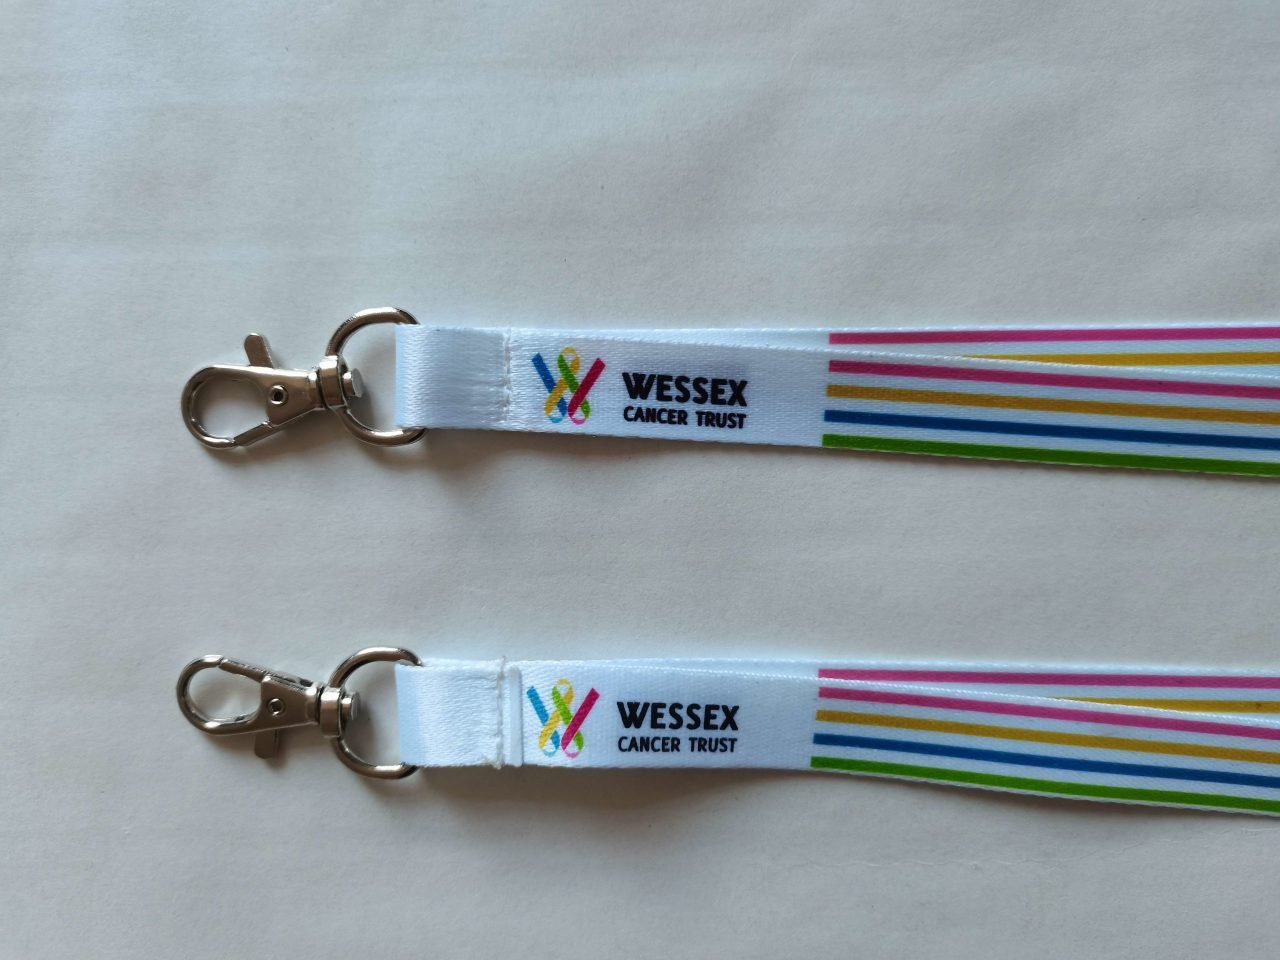 Wessex Cancer Trust announces additional support